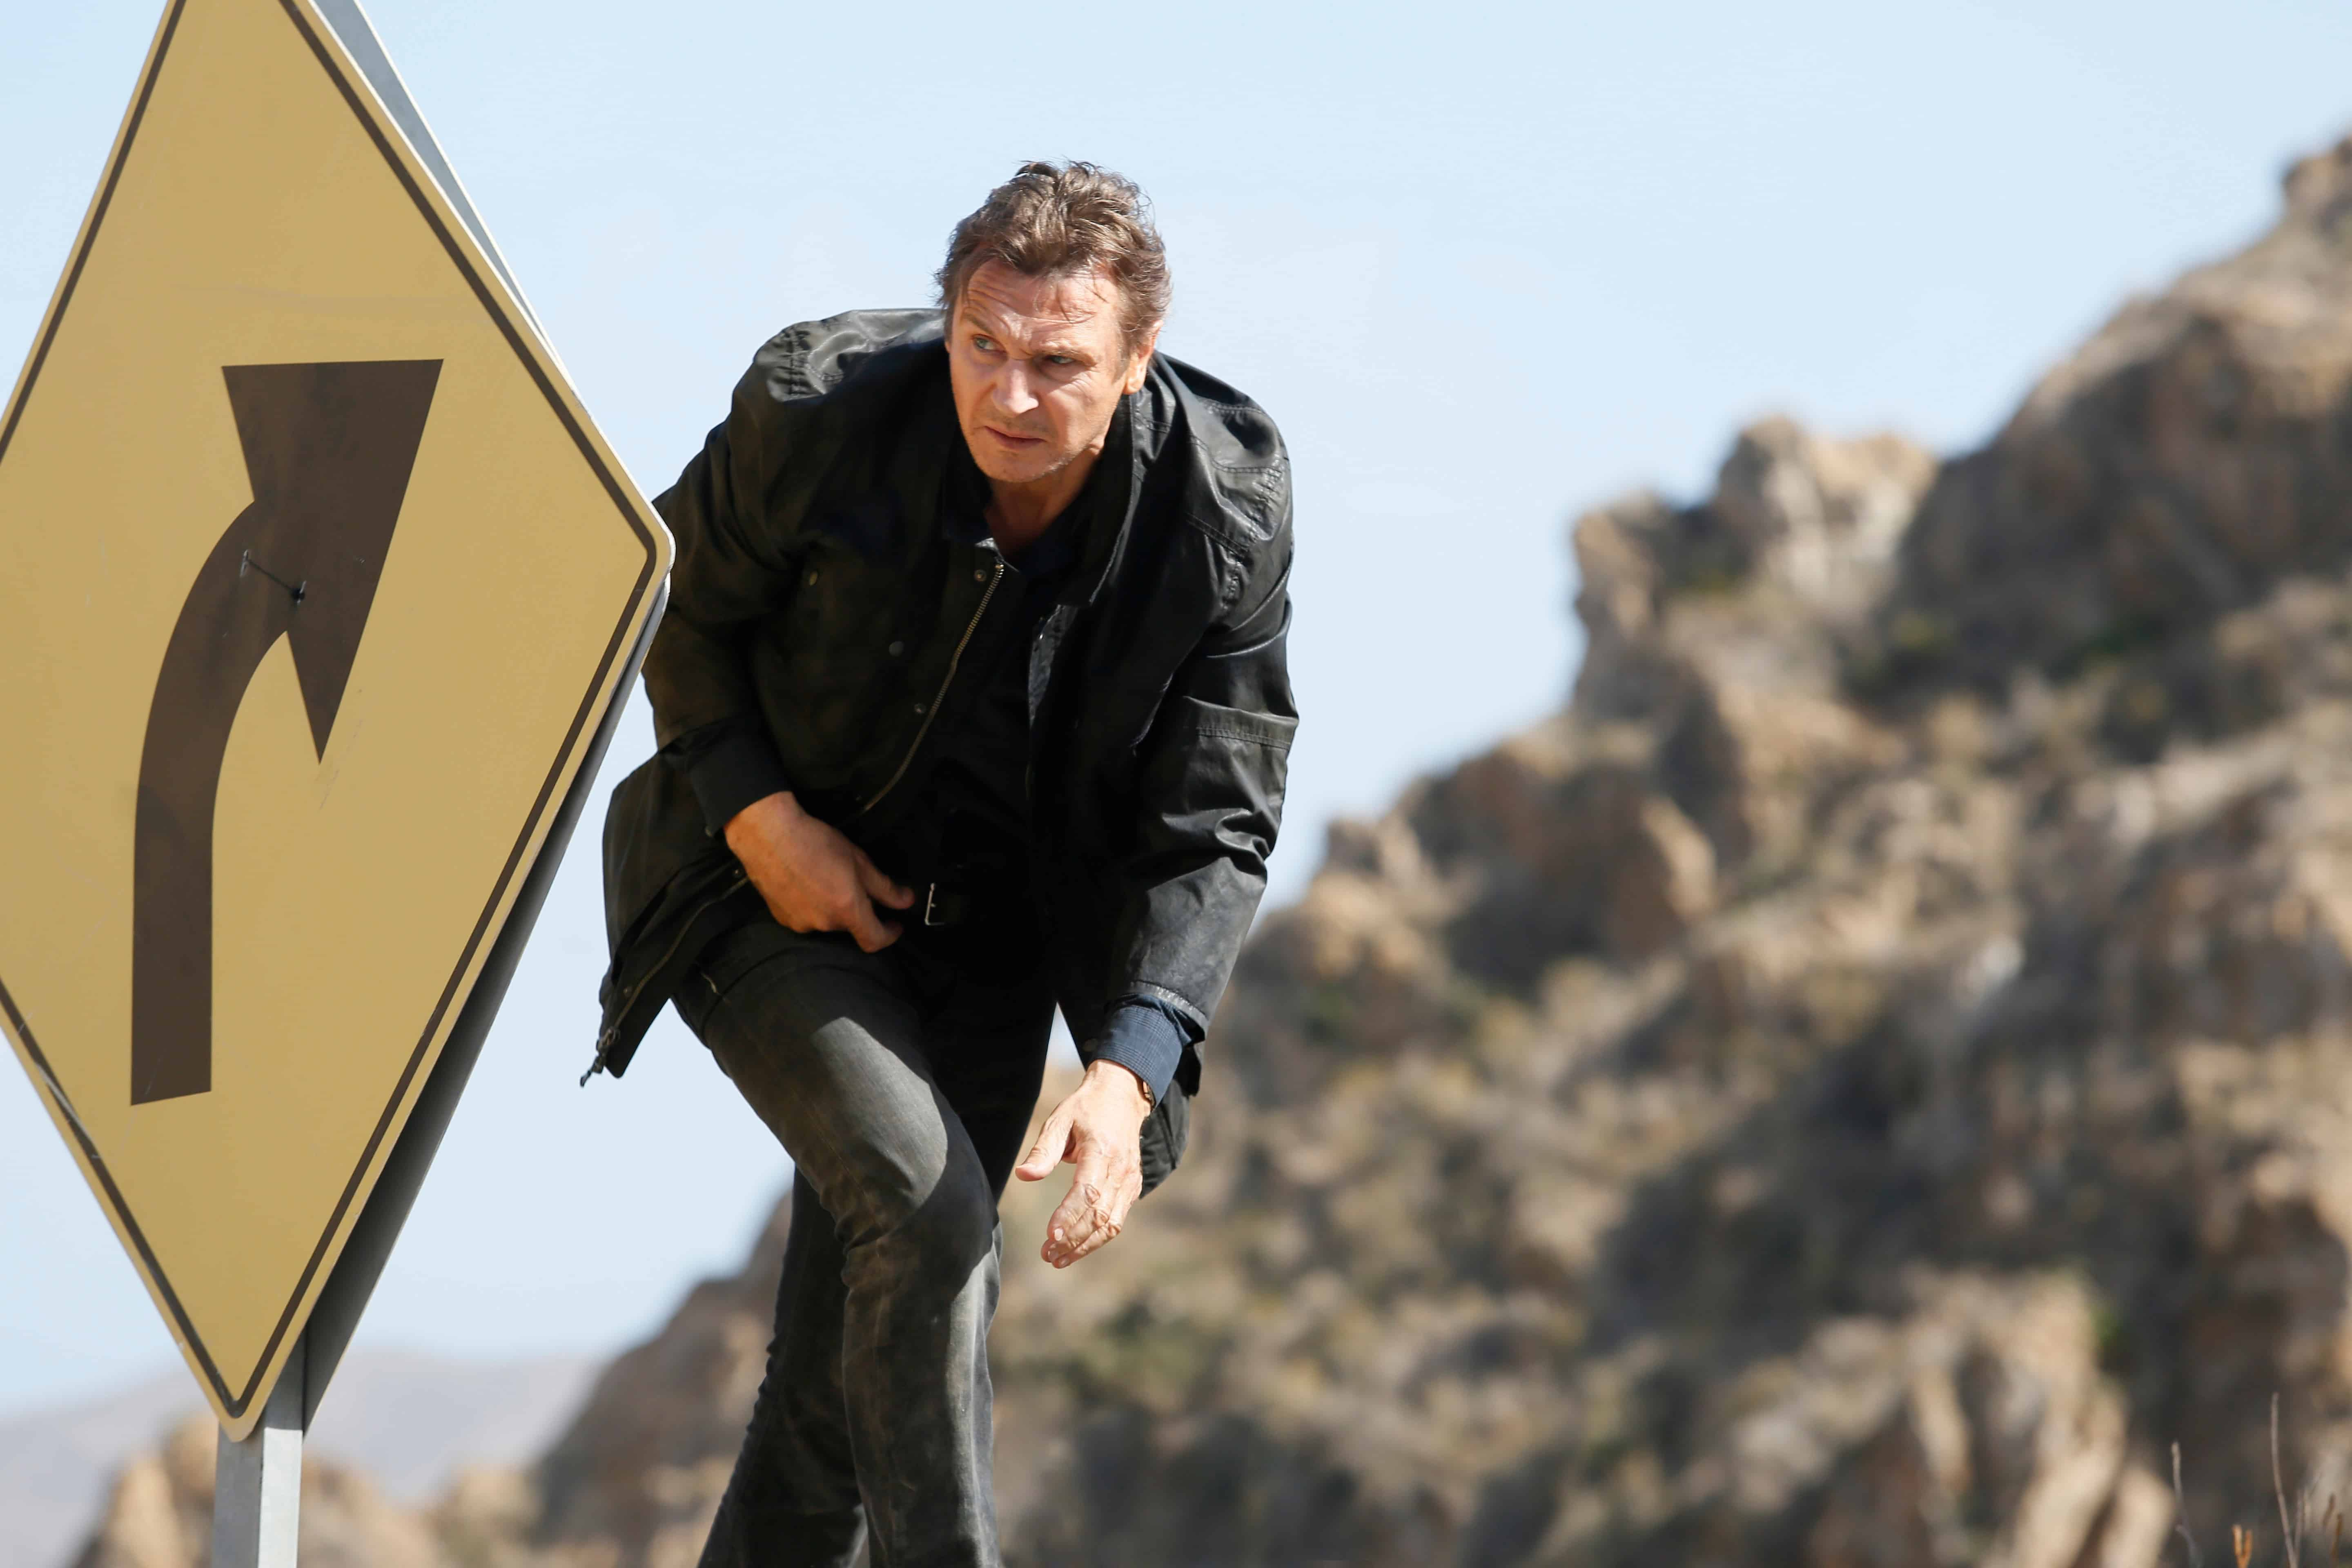 Liam Neeson back for more Liam Neeson-ing in new 'Taken 3' trailer